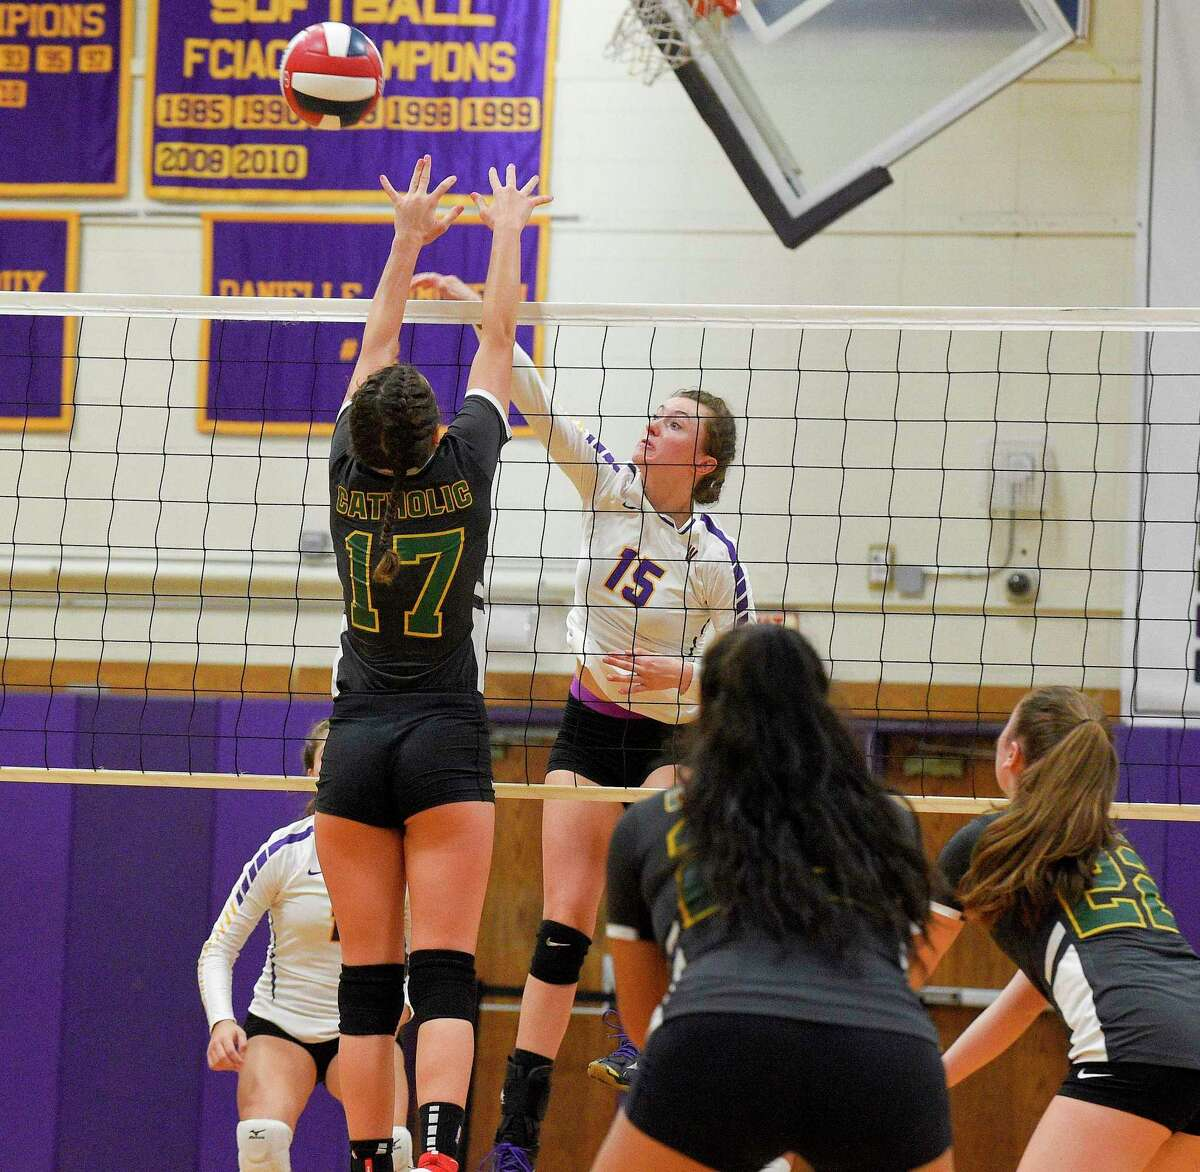 Westhill hosted Trinity Catholic in an intra-city girls volleyball match at Westhill High School on Oct. 2, 2019 in Stamford, Connecticut.